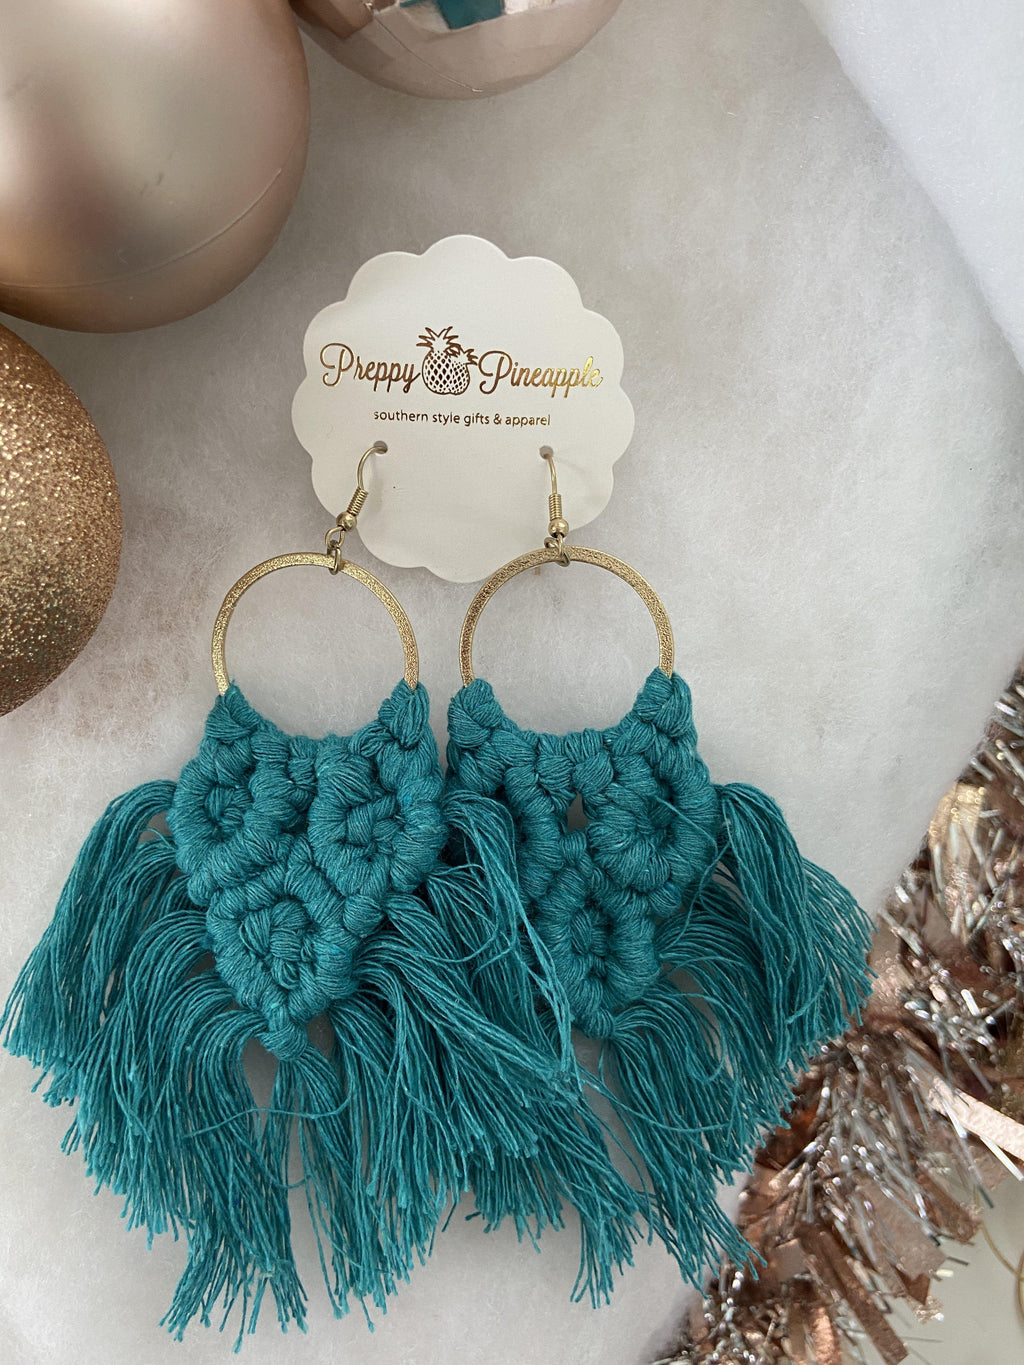 Woven Fan Dangle Earrings - Preppy Pineapple